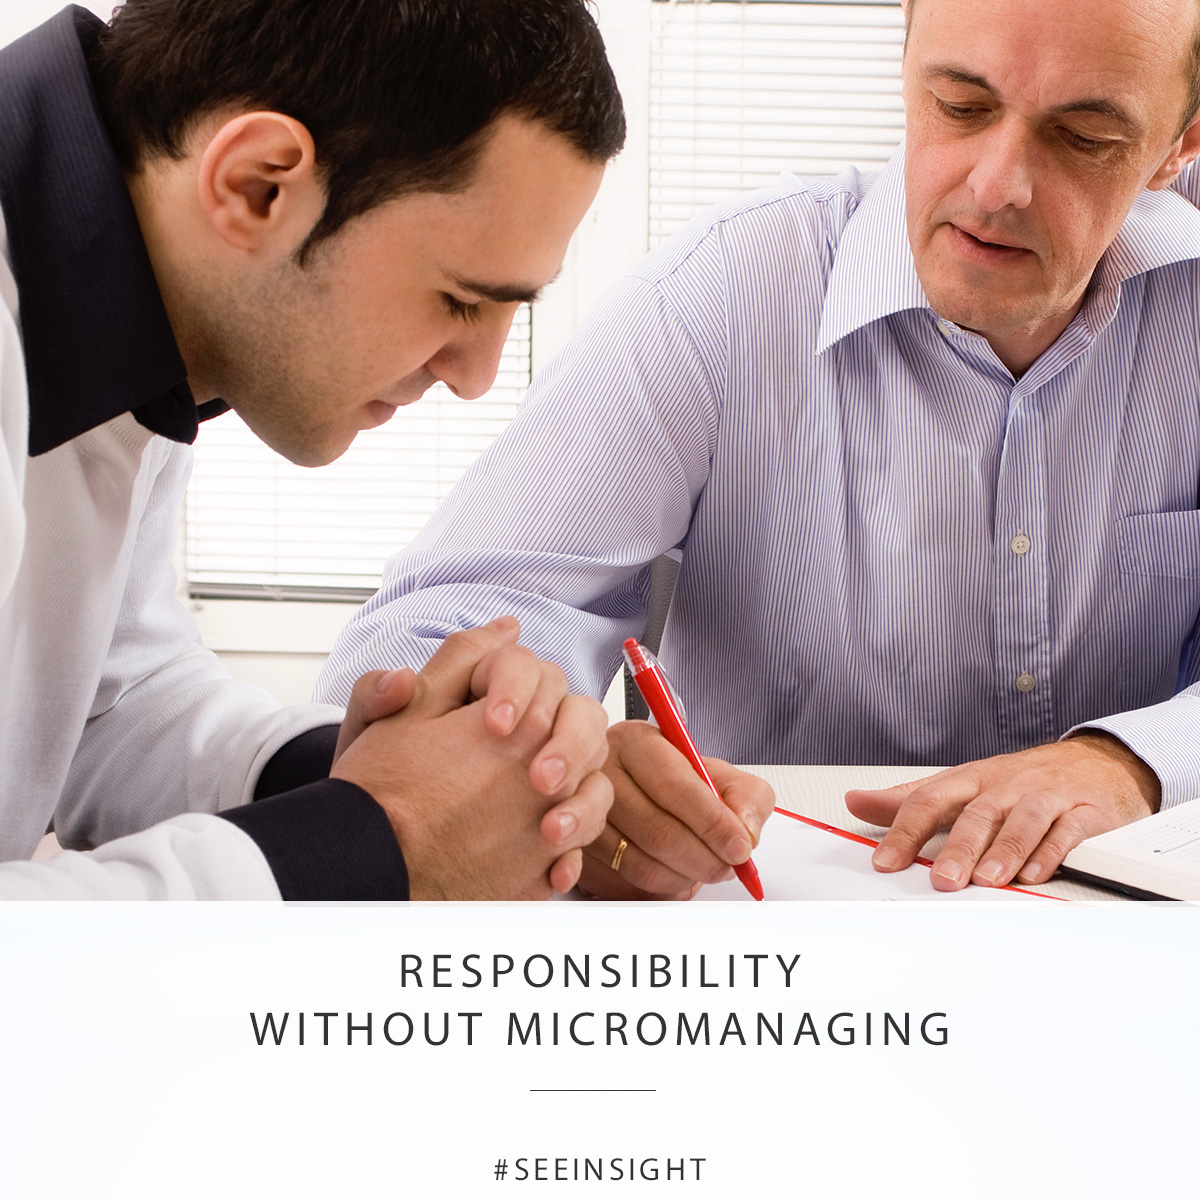 Responsibility without Micromanaging